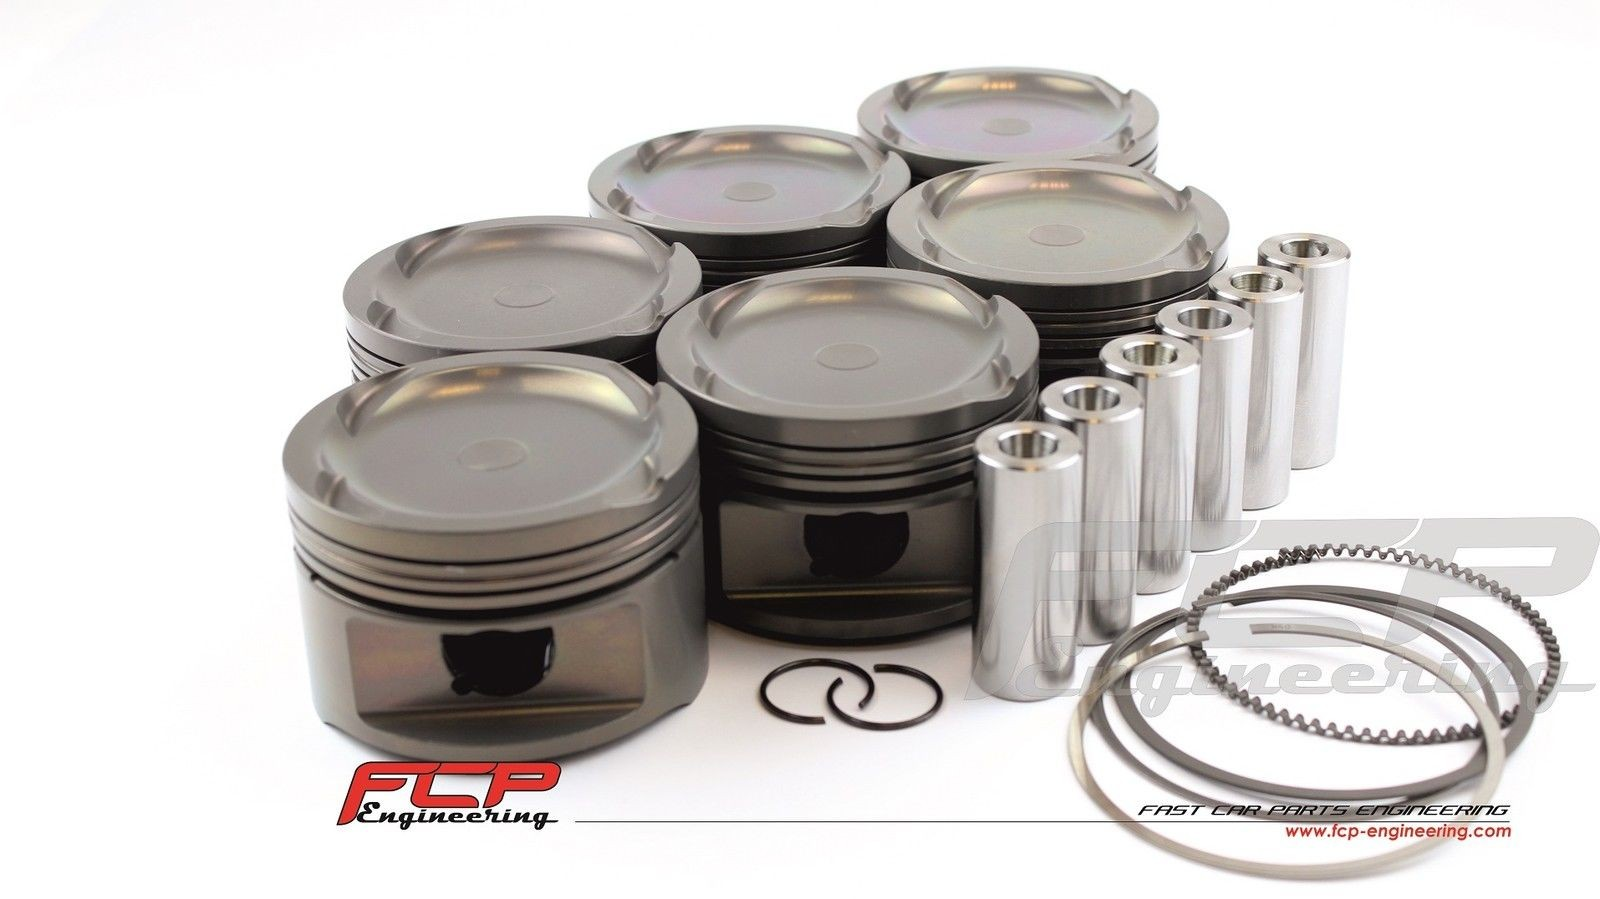 BMW 2.5 M50B25 M52B25 TURBO FCP Forged pistons 84.50mm CR 8.5